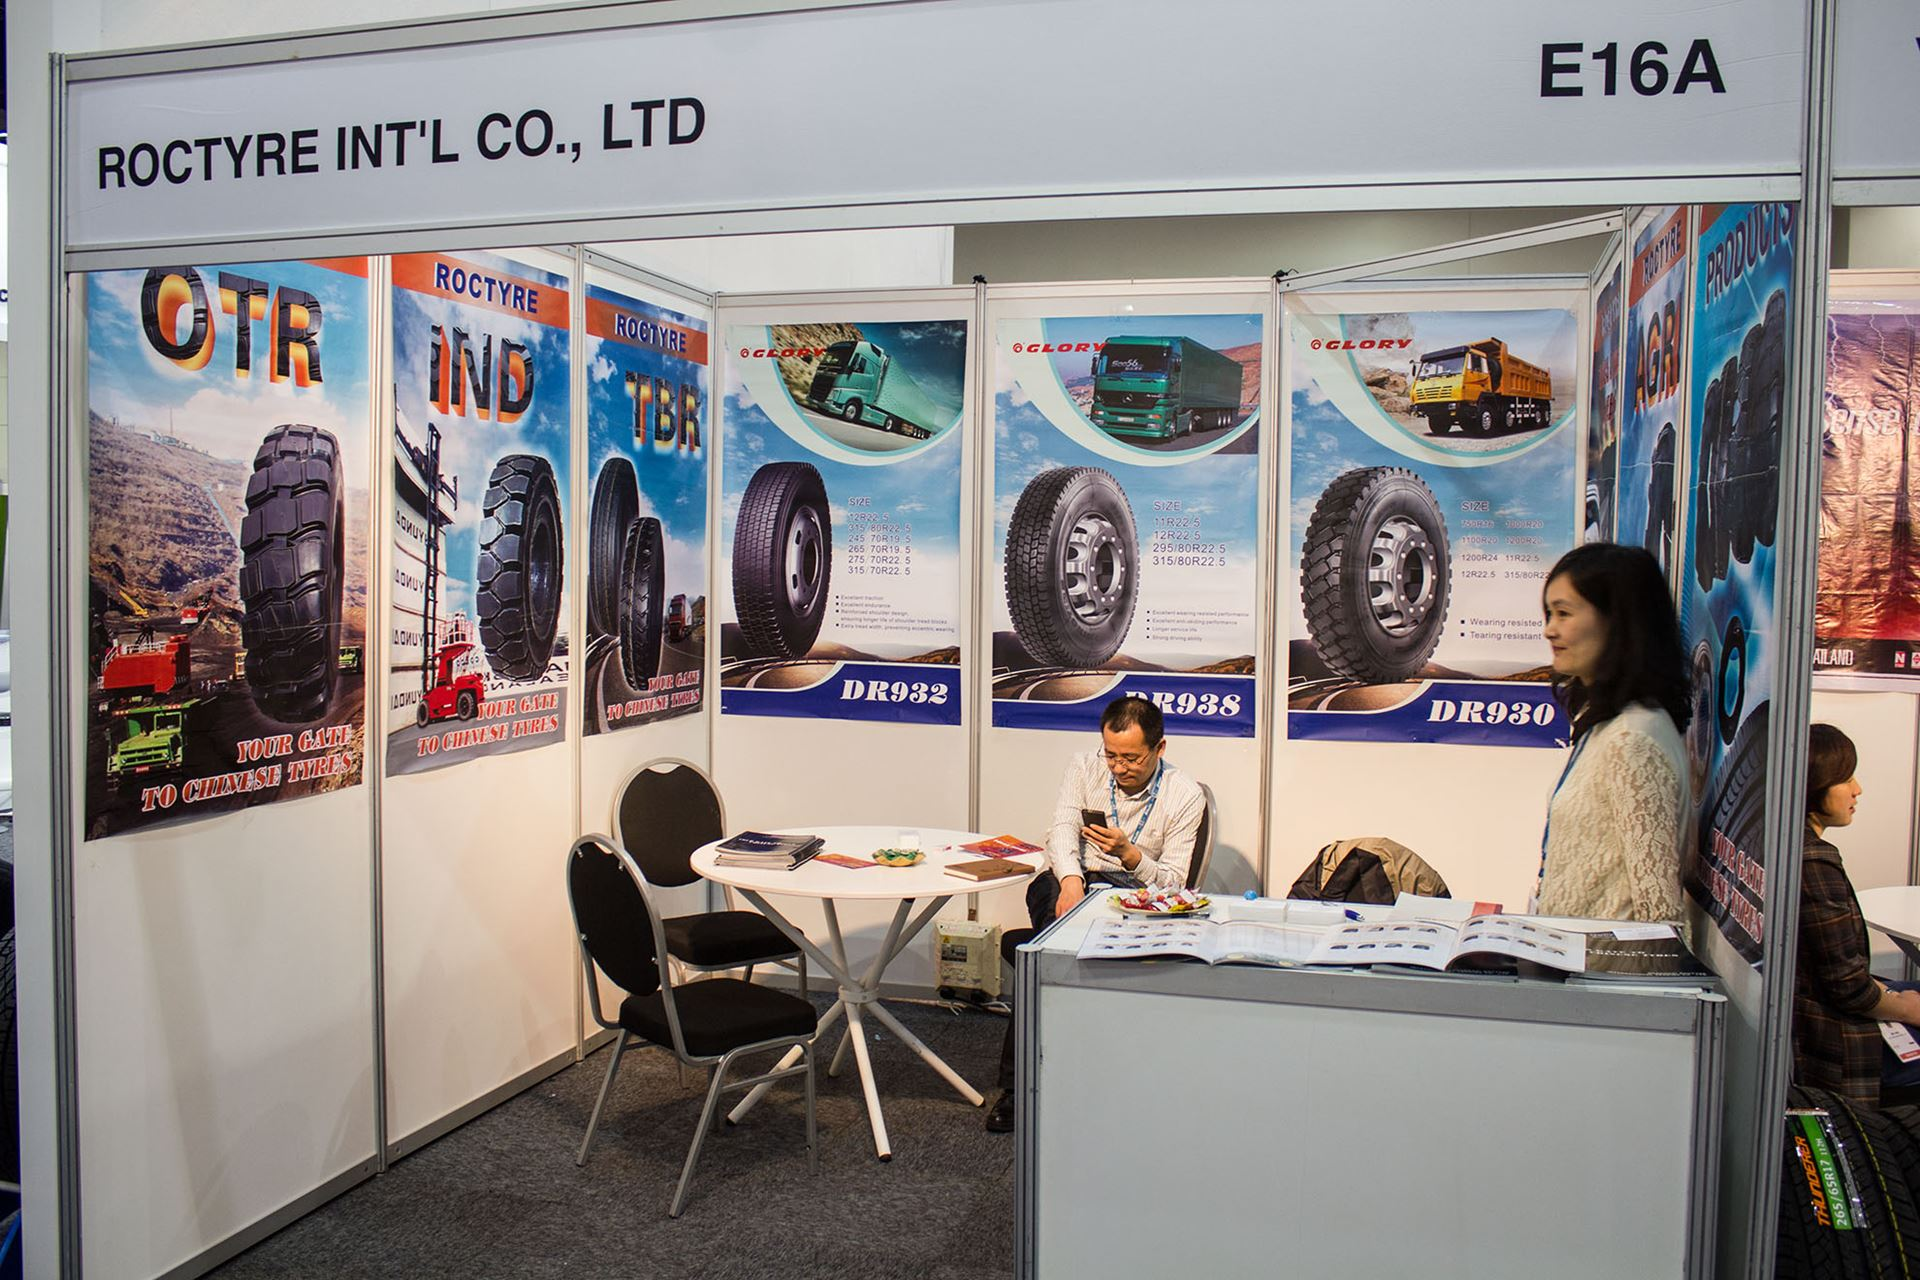 Tyre-Expo-South-Africa-2014-roctyre